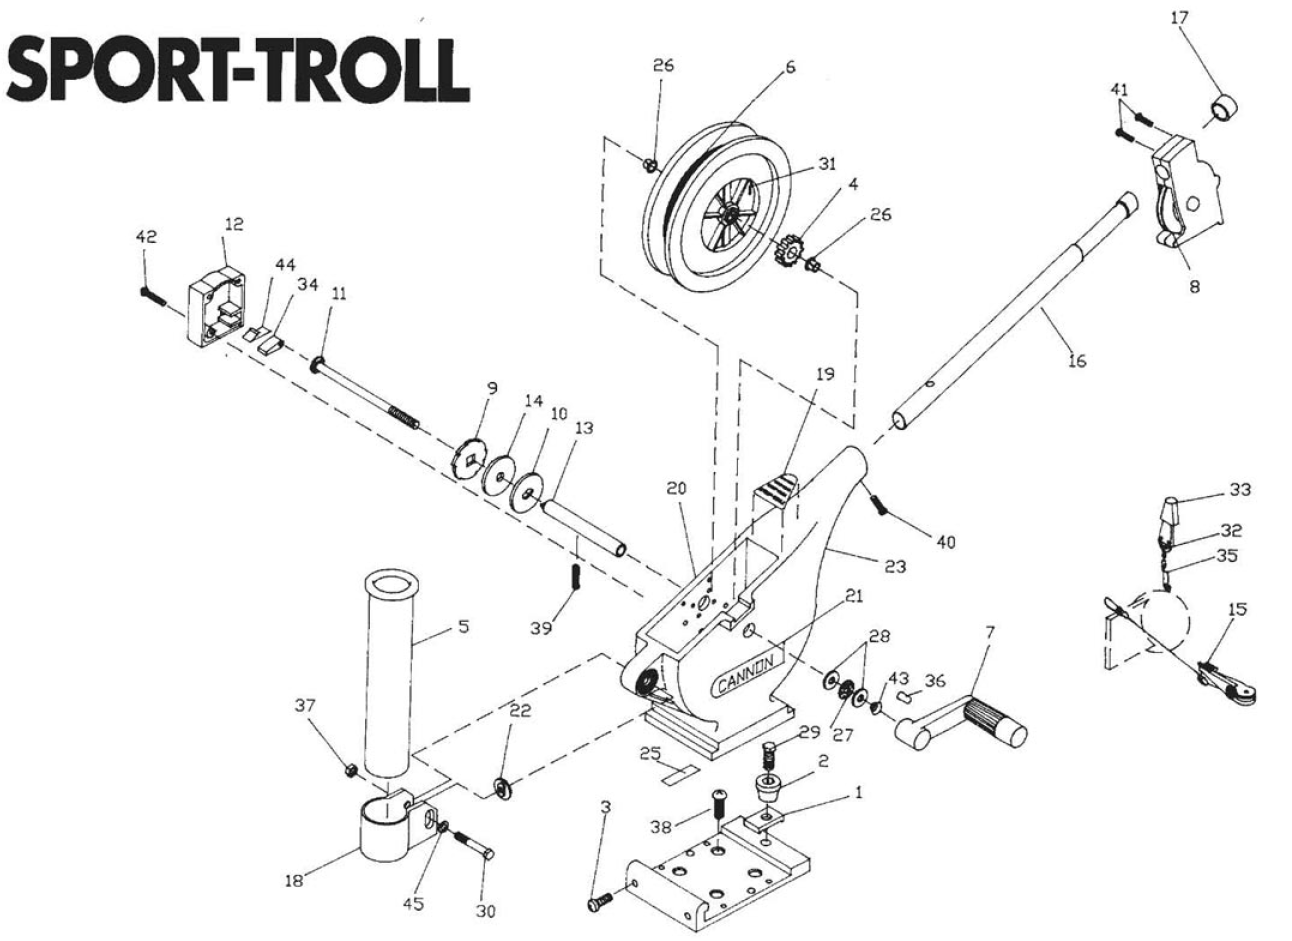 cannon diagram pictures to pin on pinterest